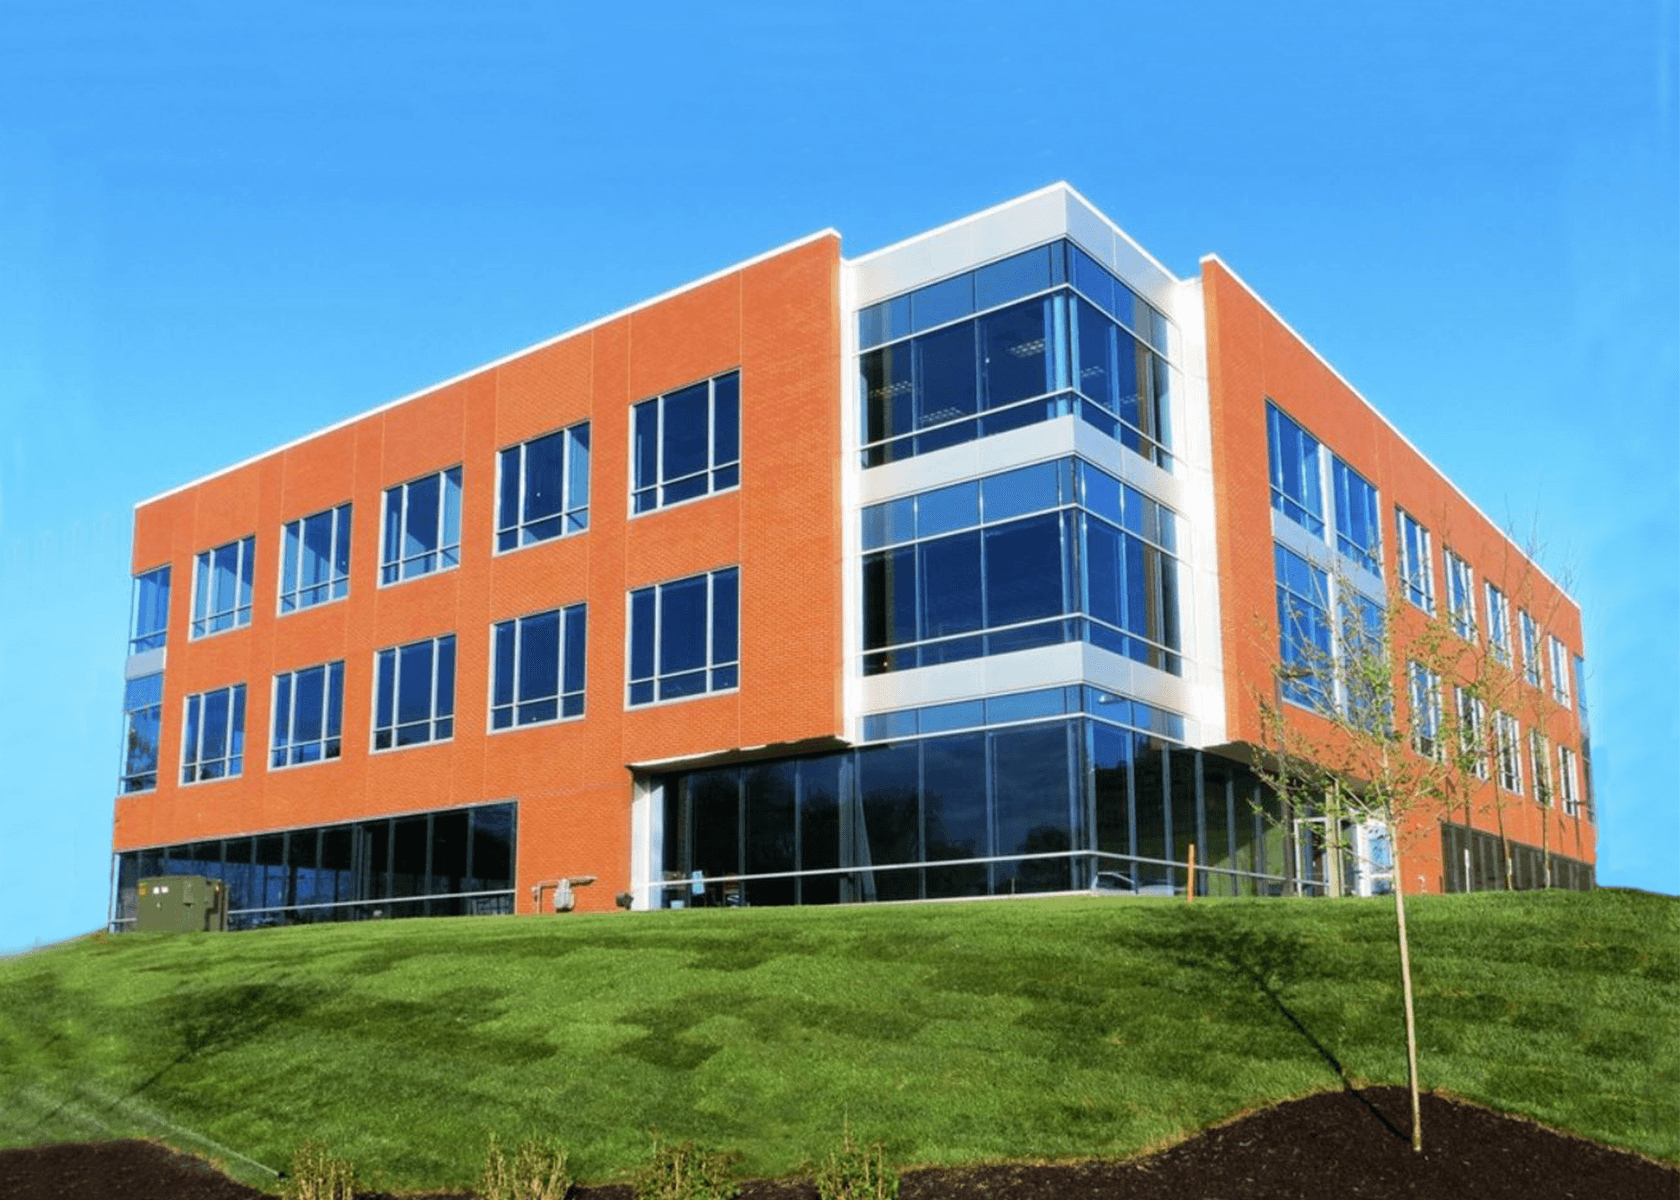 Exterior of 300 Woodcliff Drive office building: brick building with large windows and large lawn